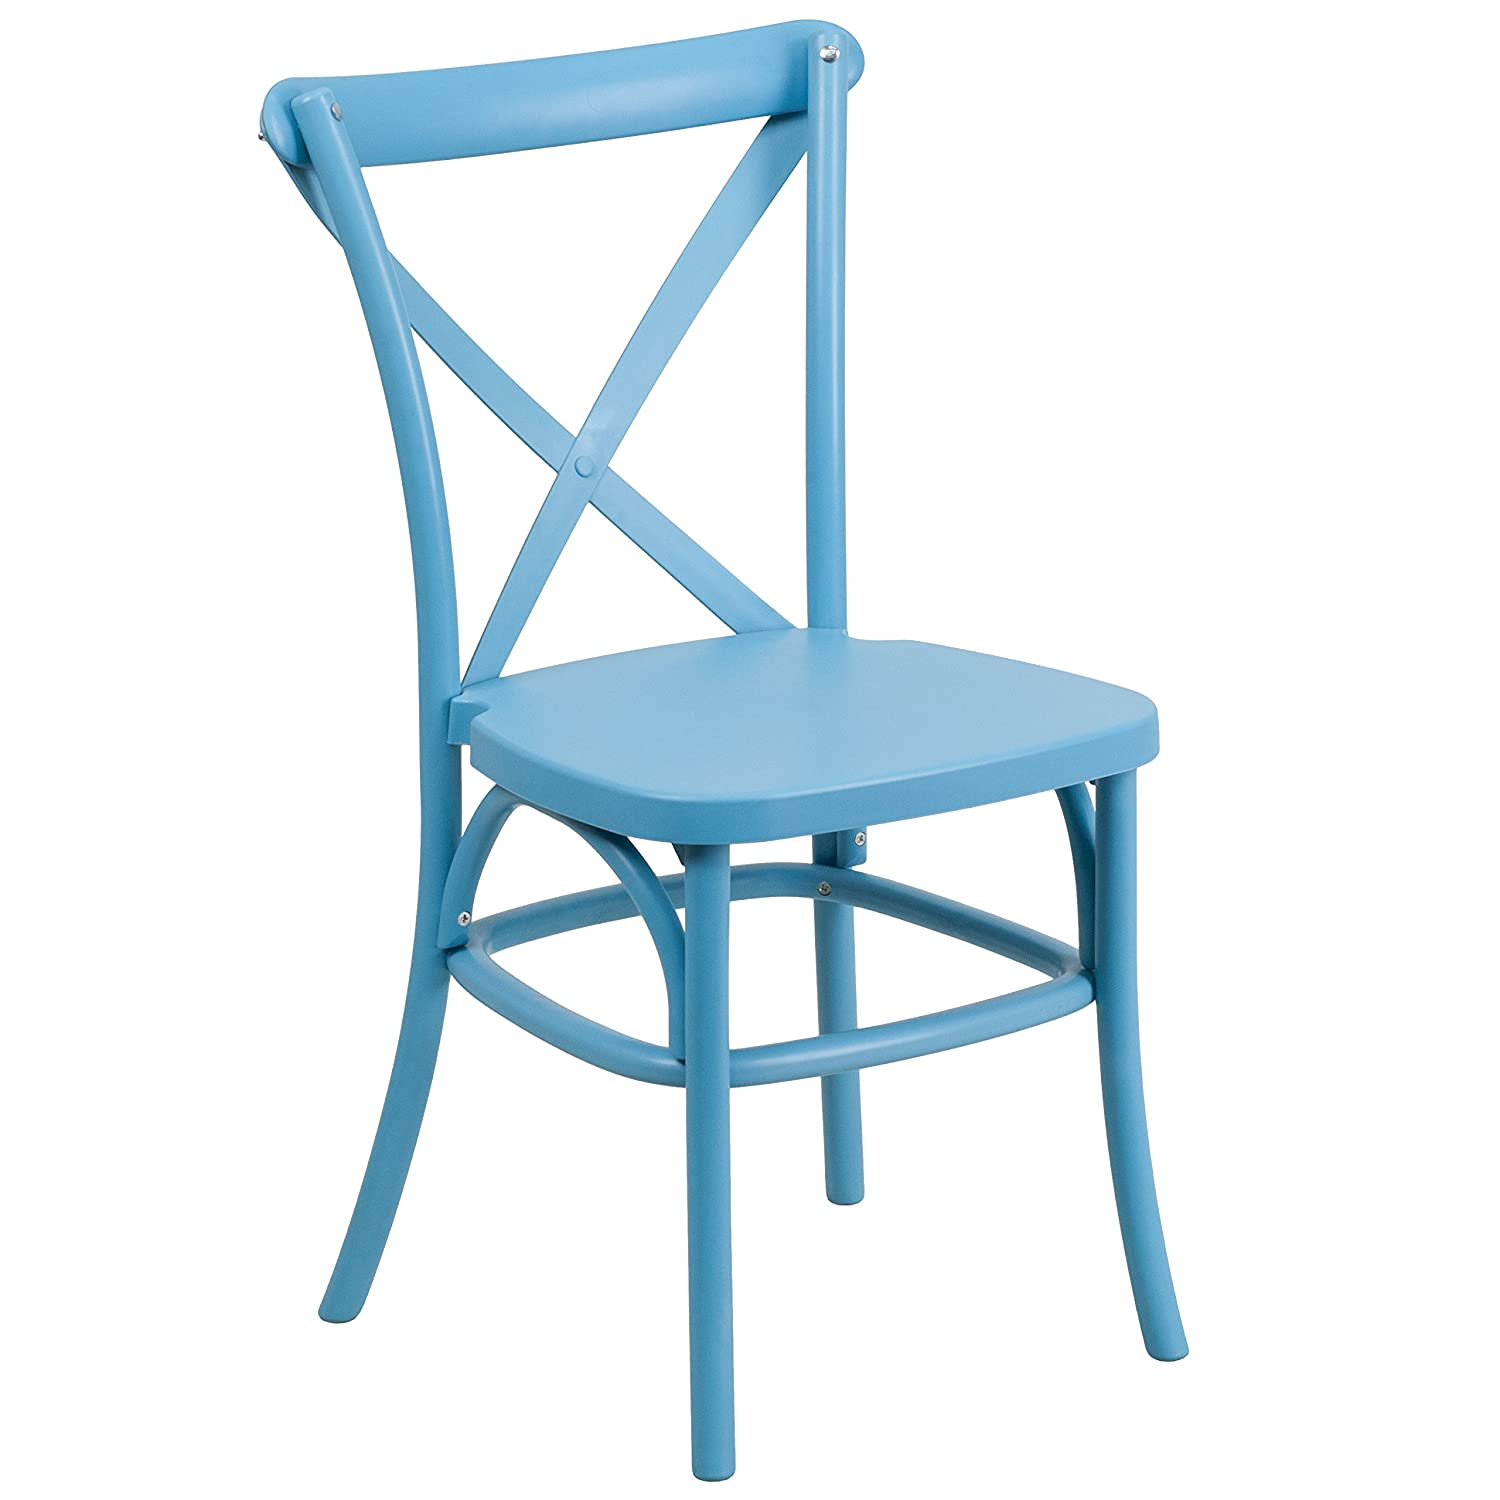 Merveilleux Amazon.com: Flash Furniture HERCULES Series Blue Resin Indoor Outdoor Cross  Back Chair With Steel Inner Leg: Kitchen U0026 Dining